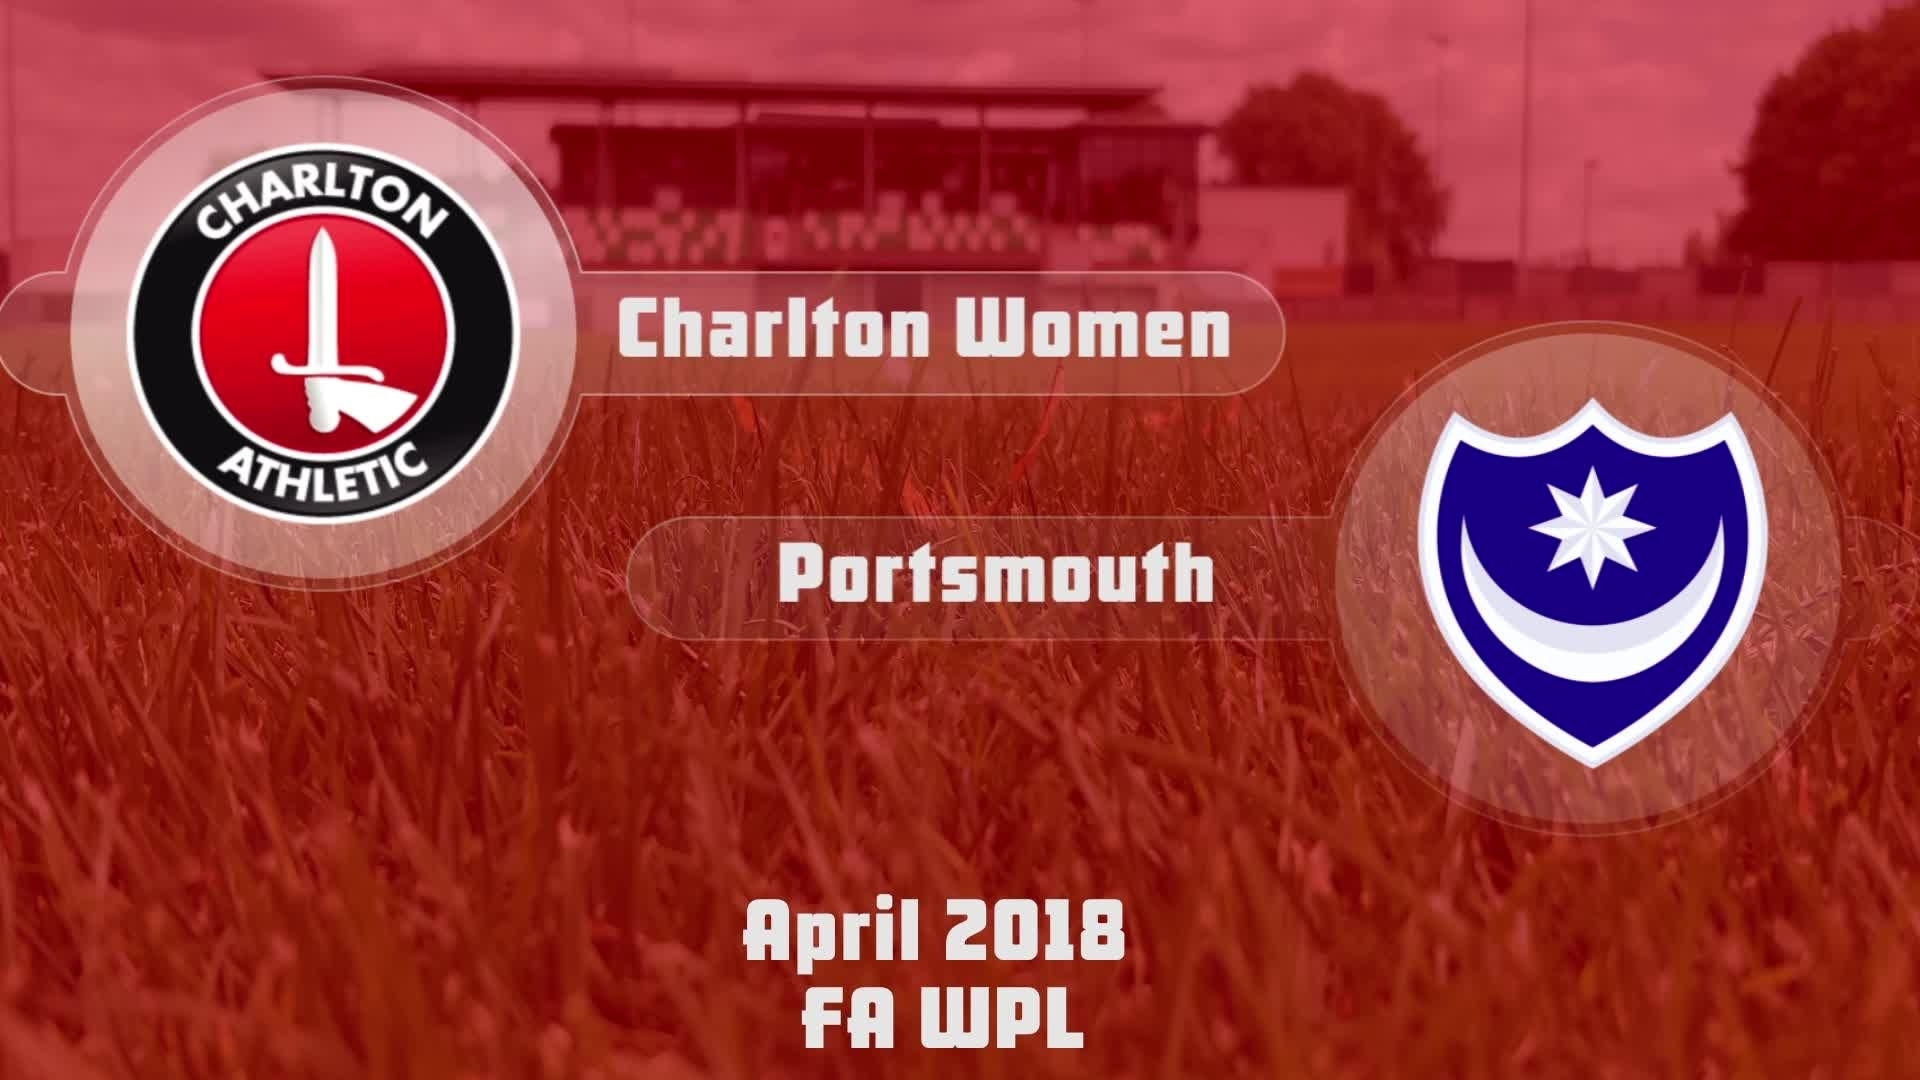 WOMEN'S HIGHLIGHTS | Charlton 1 Portsmouth 0 (April 2018)